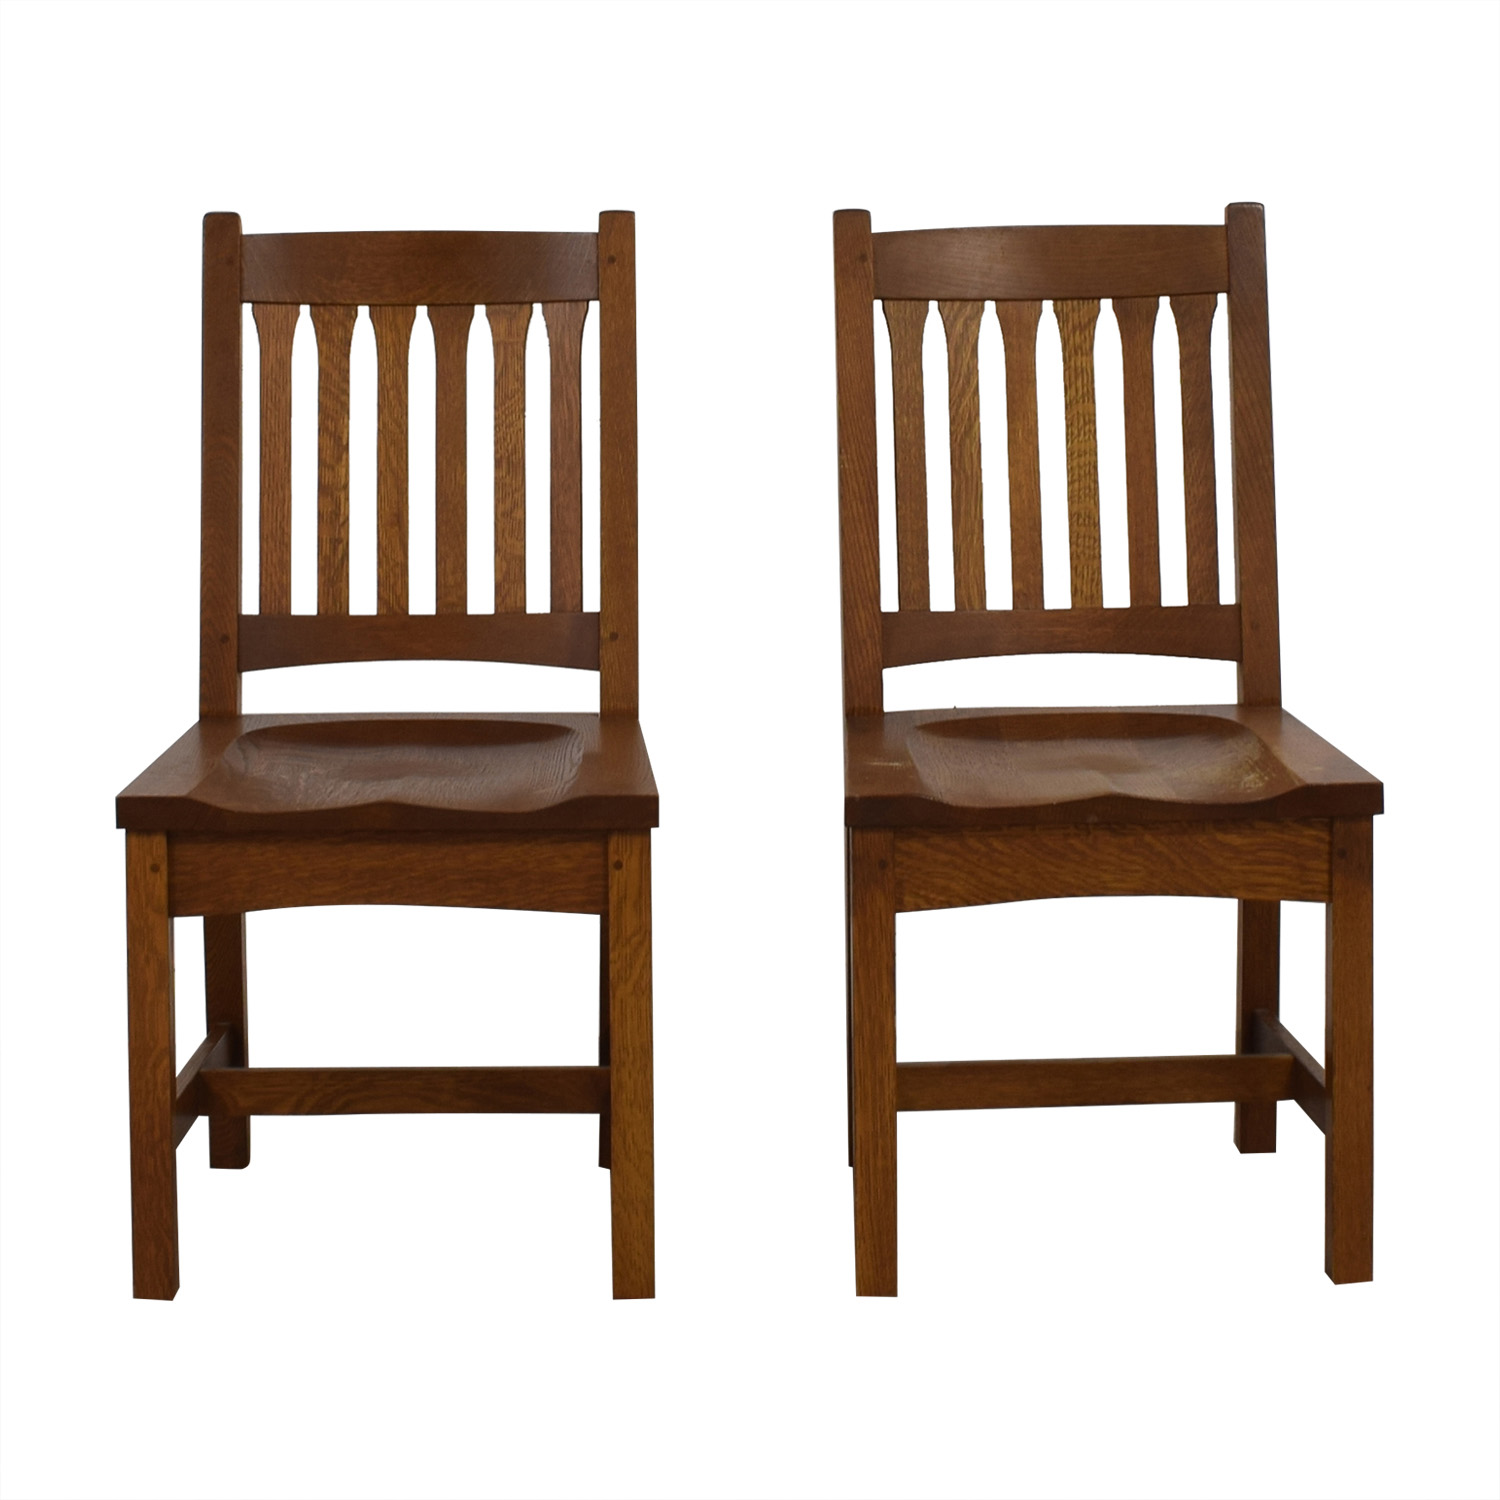 Stickley Audi & Co Stickley Audi & Co Handcrafted Wooden Chairs discount